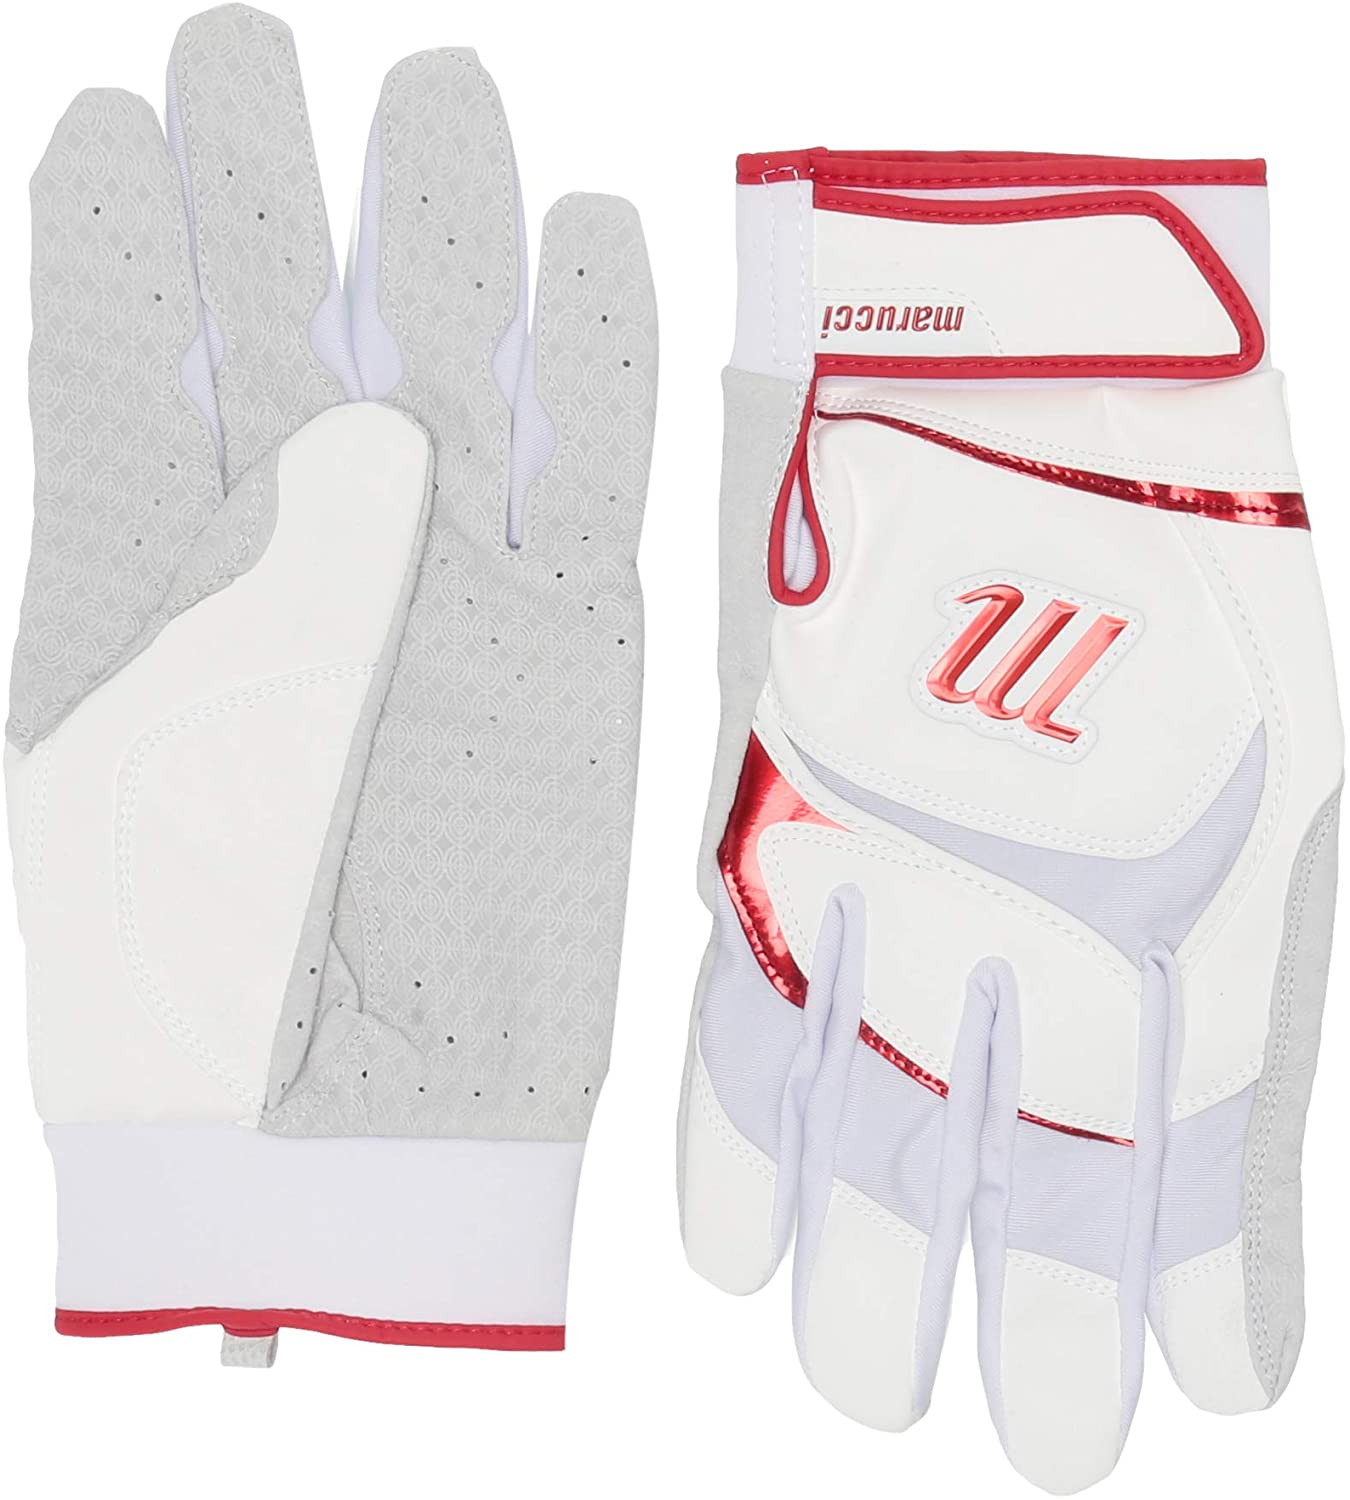 Marucci Adult Pittards Signature Batting Gloves MBGSGNP